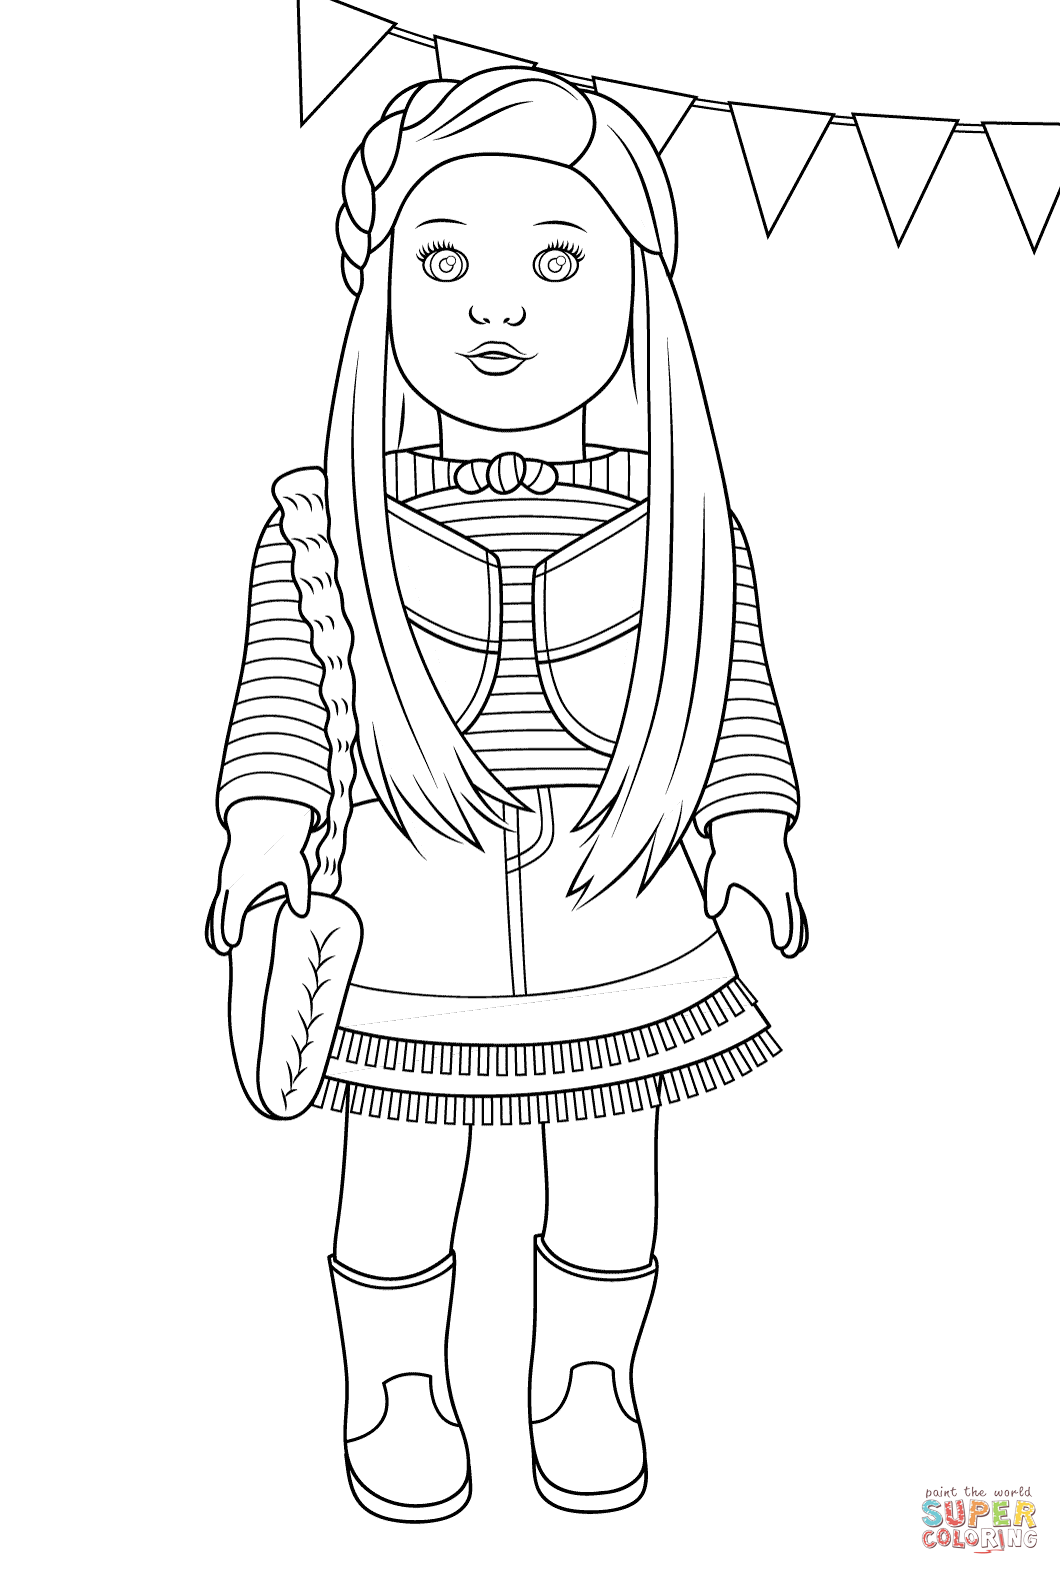 American Girl Mckenna coloring page | Free Printable Coloring Pages